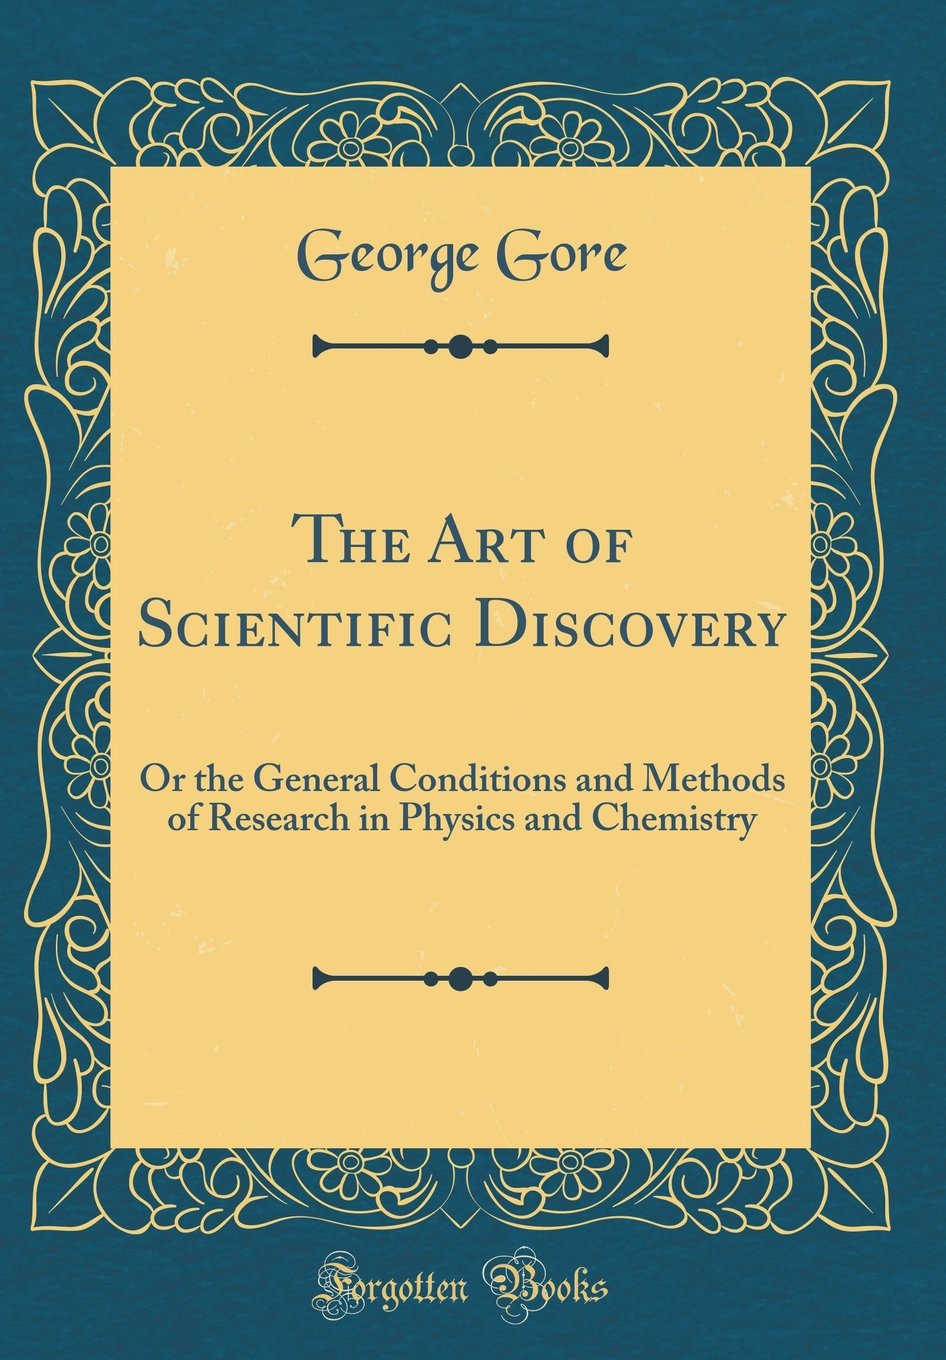 The Art of Scientific Discovery: Or the General Conditions and Methods of Research in Physics and Chemistry (Classic Reprint) PDF